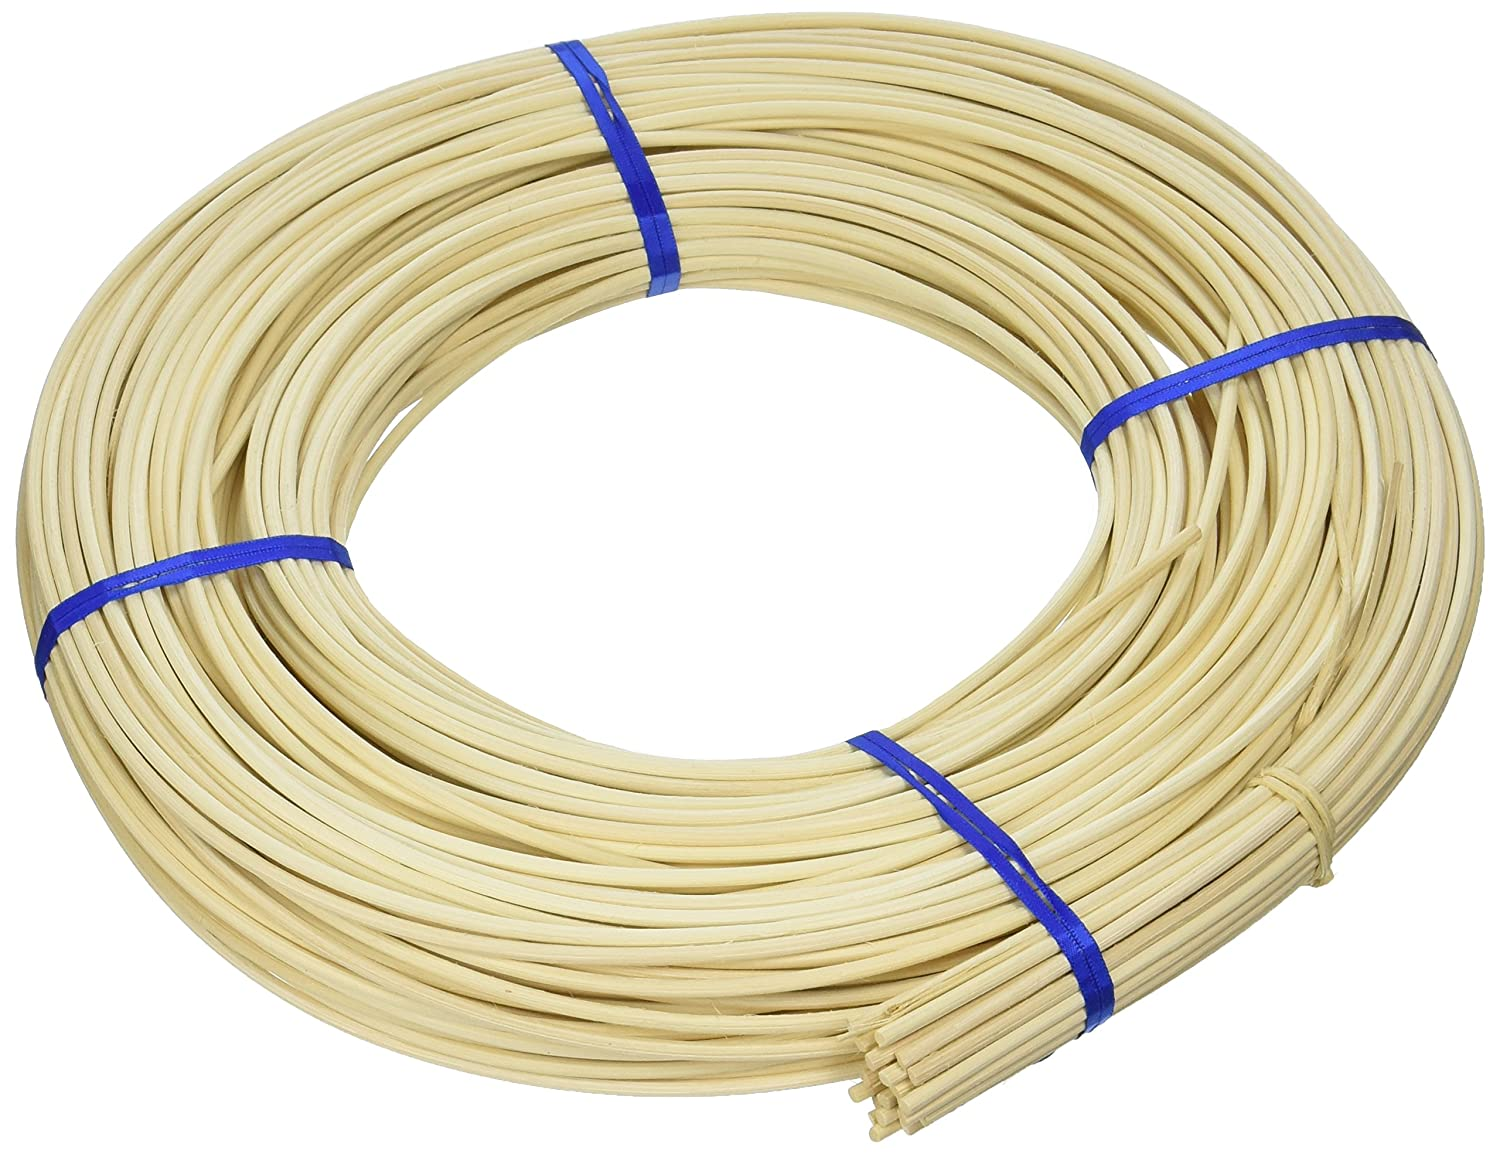 Commonwealth Basket Round Reed #5 3-1/4mm 1-Pound Coil, Approximately 360-Feet 5RR